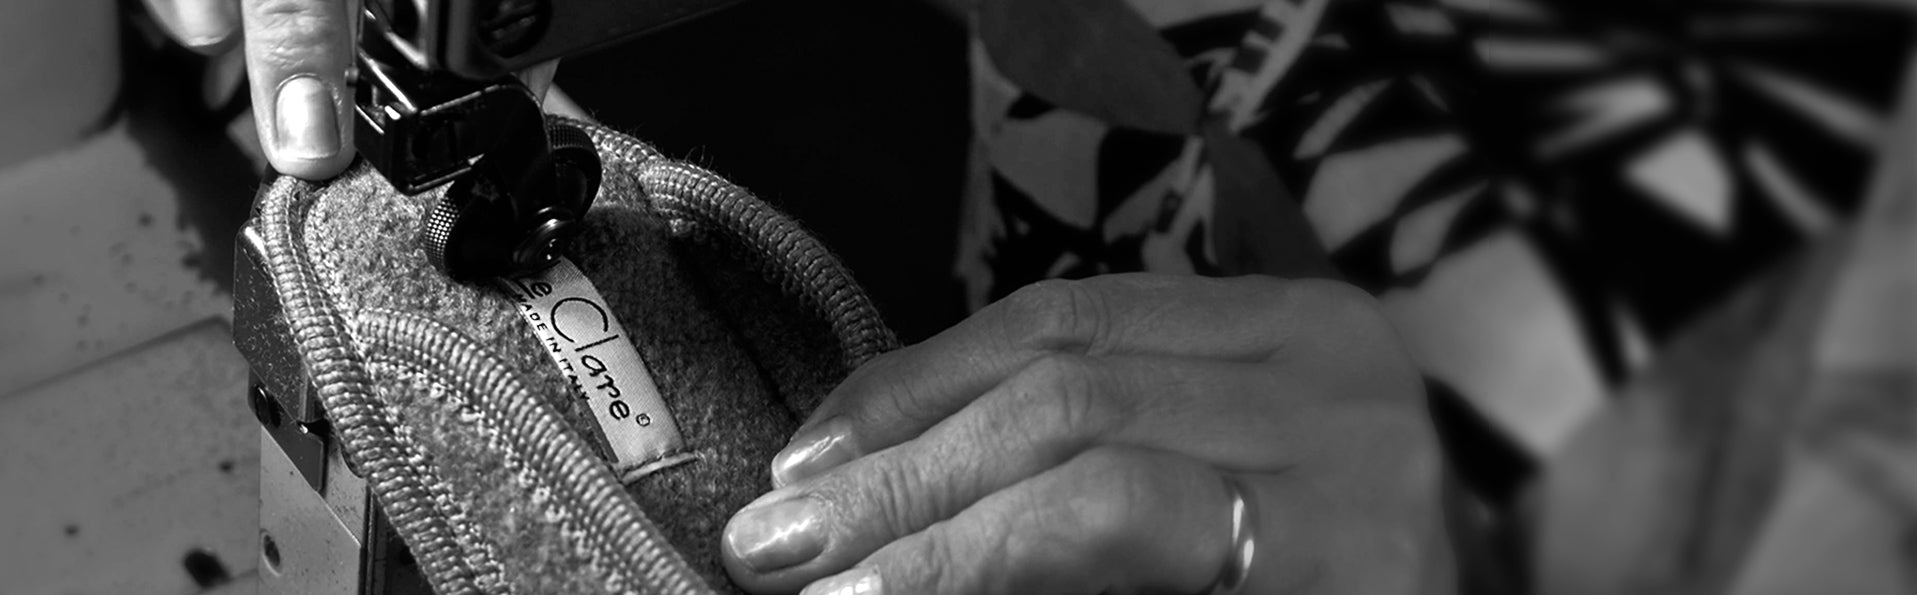 Woman hand sewing a pair of Le Clare slippers